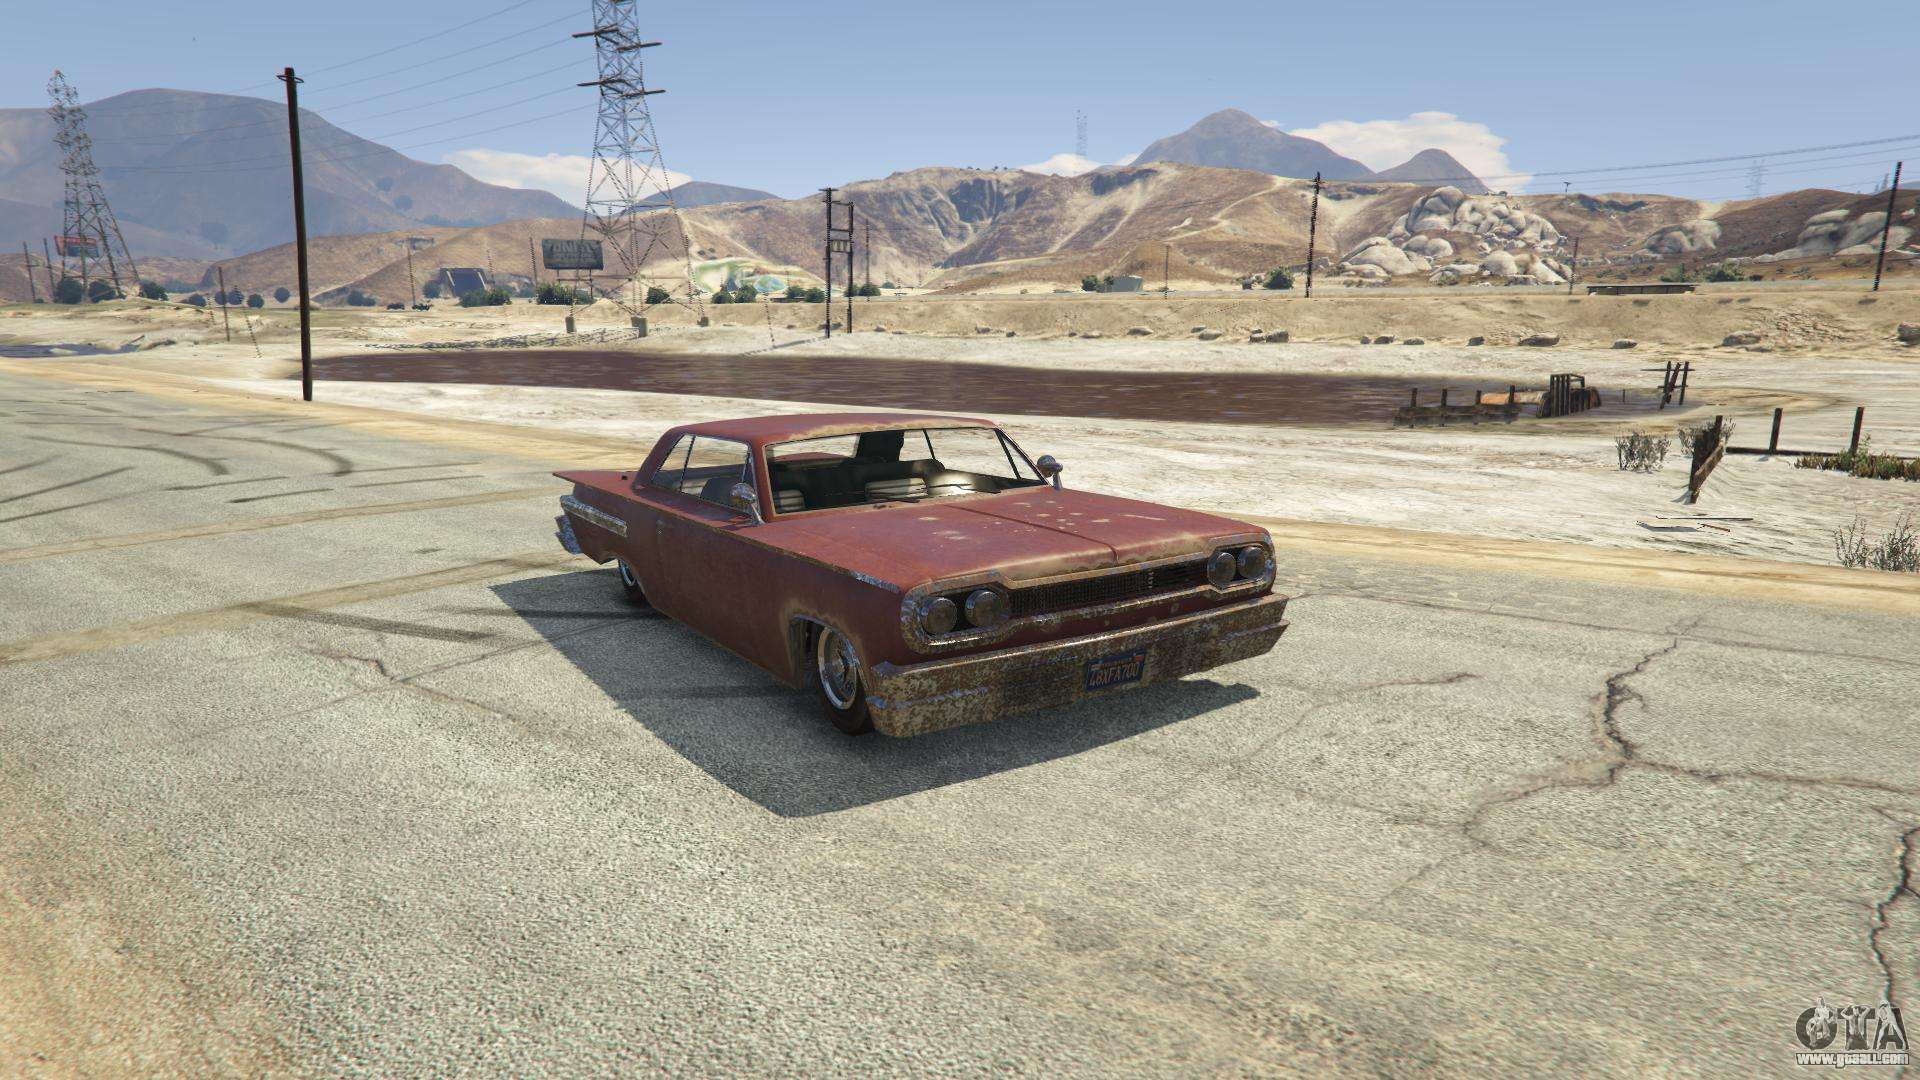 Voodoo from GTA 5 - front view